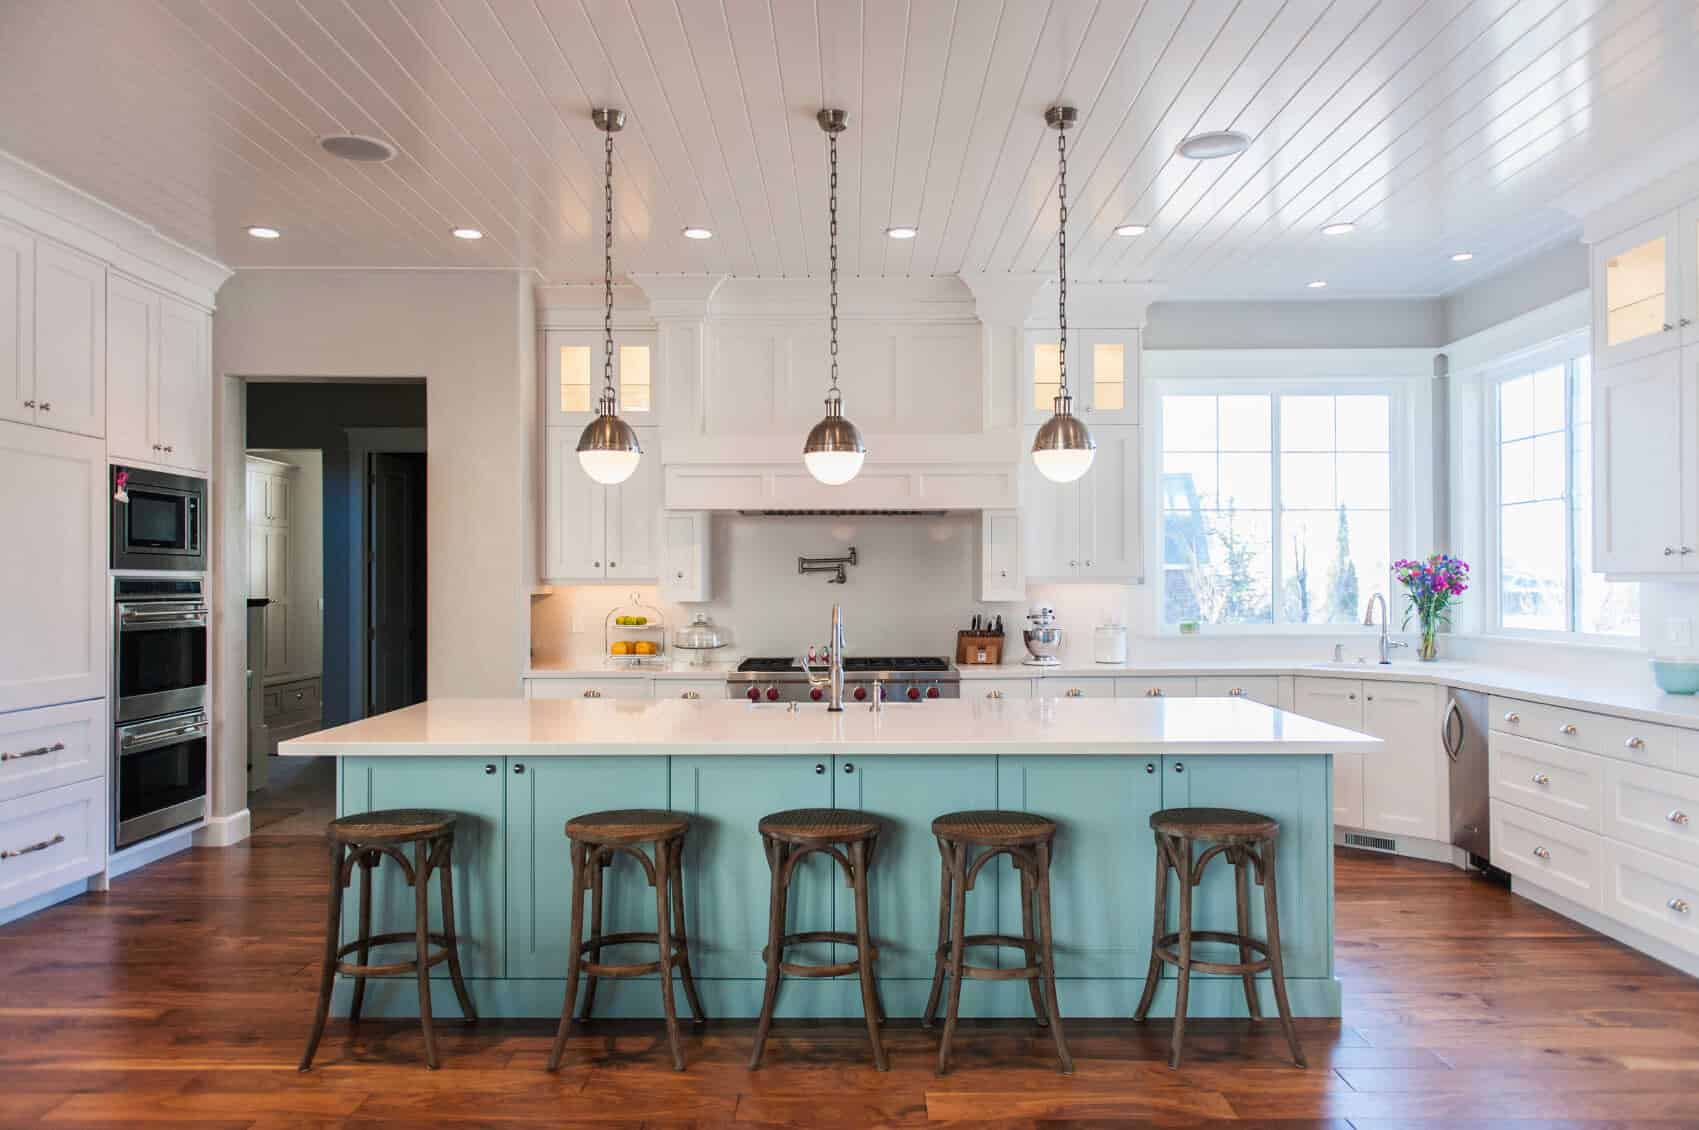 Cottage Kitchen With White Shiplap Beam Ceiling, Recessed And Pendant  Lighting, Corner Windows And Central Island Breakfast Bar.